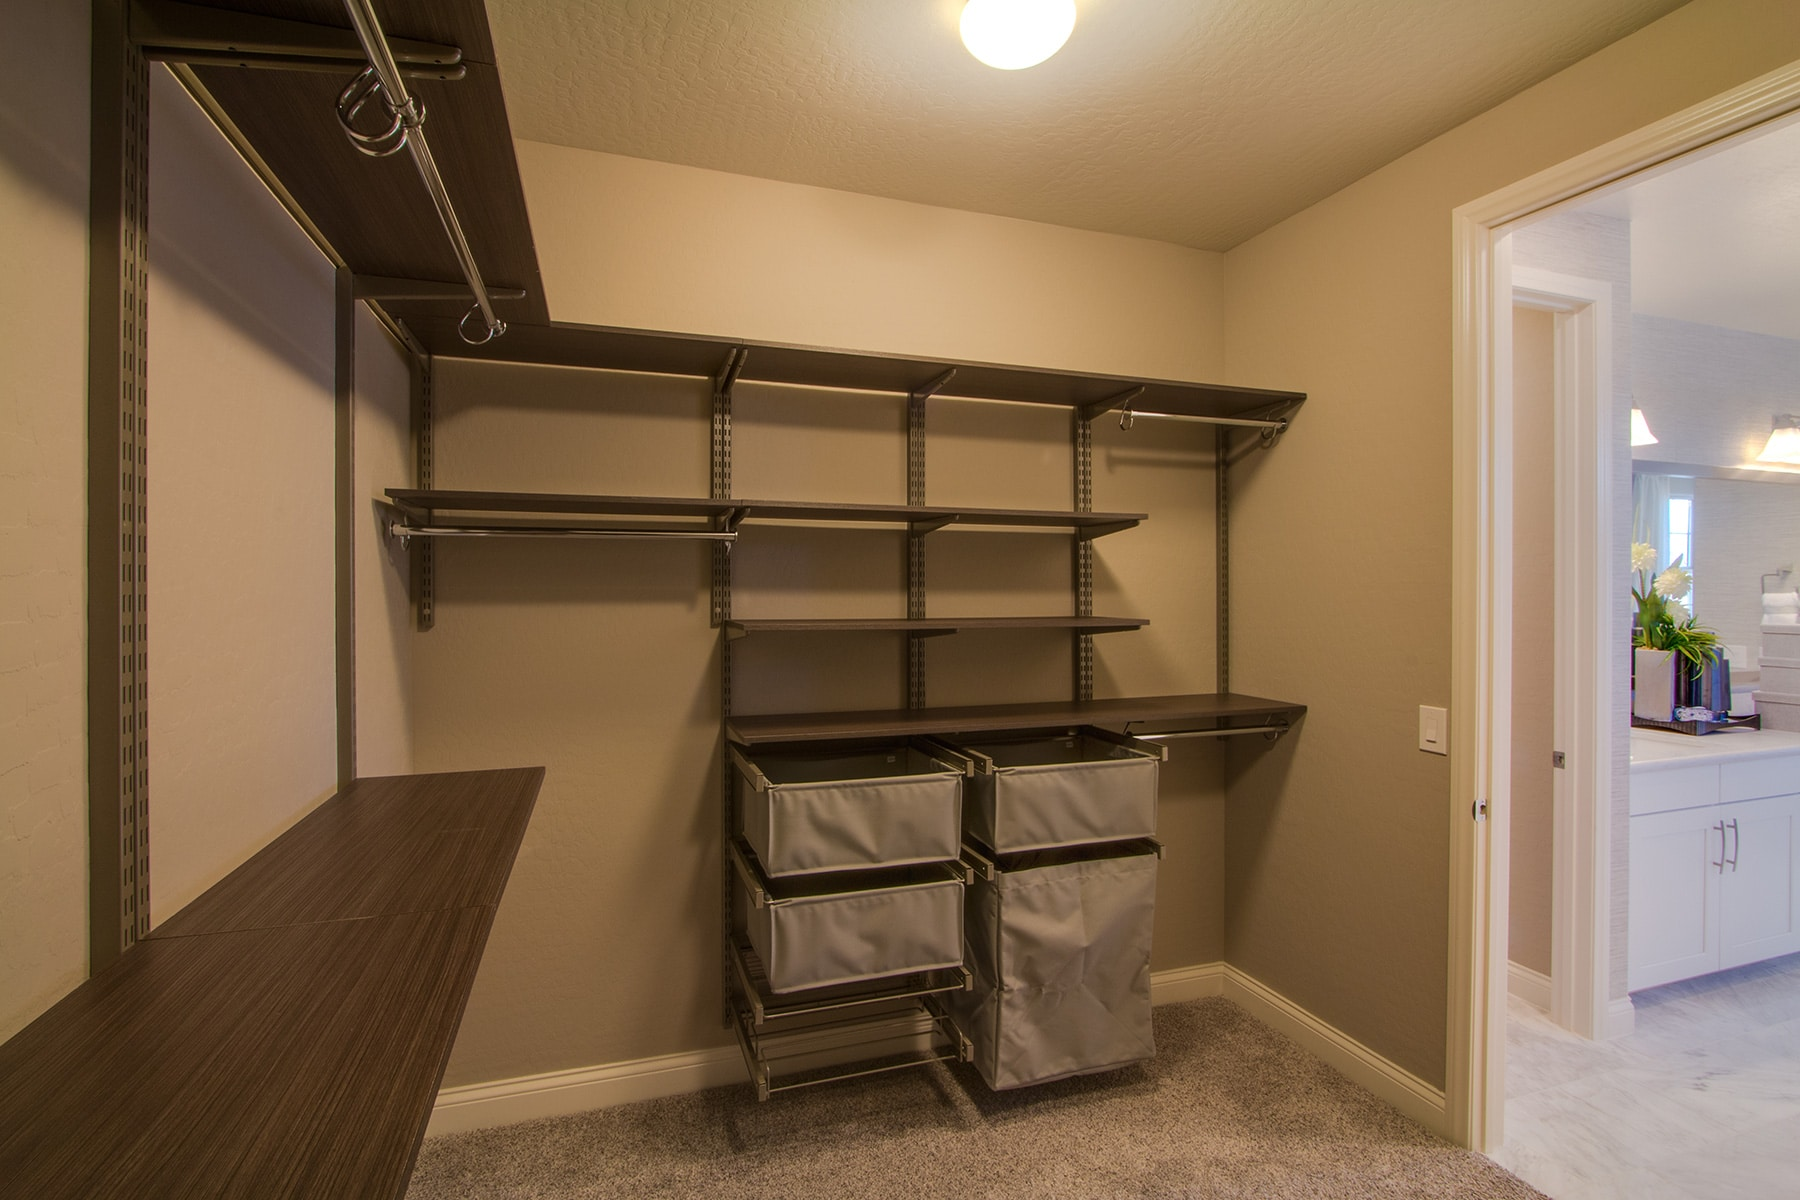 Walk In Closet Systems with FreedomRail, Hamper and Shoe Pull-Outs